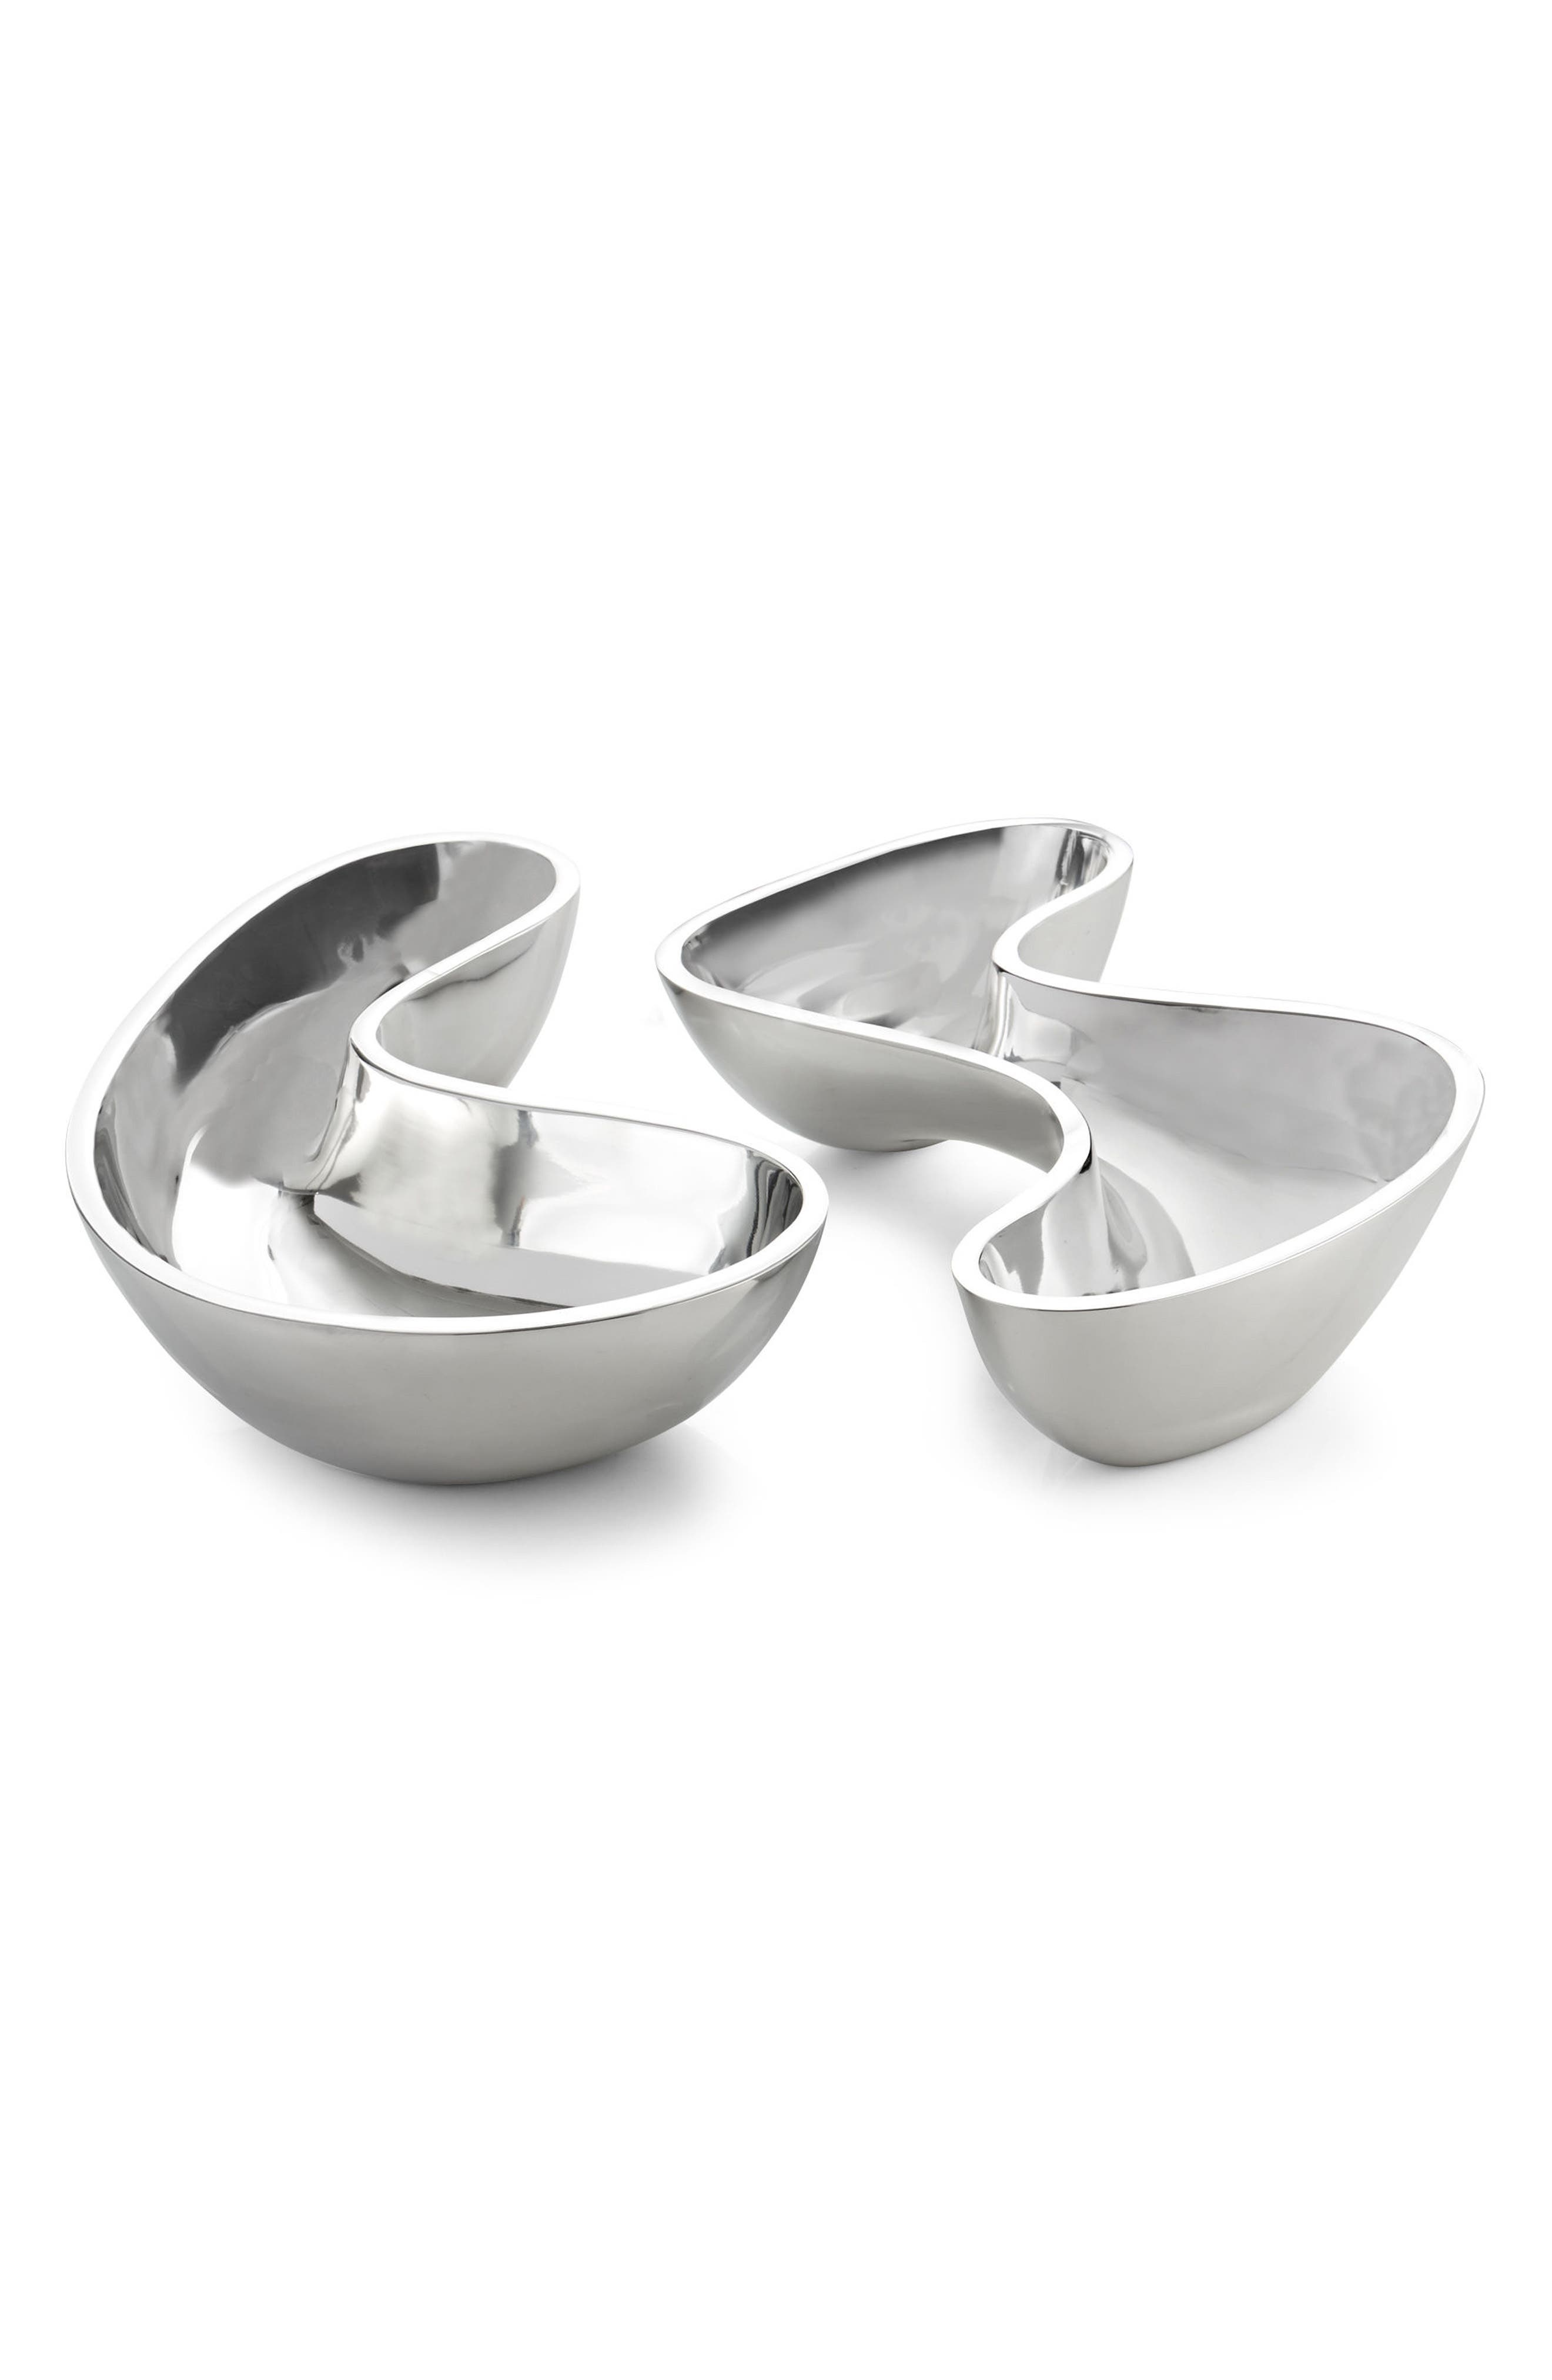 SixtyFive 65 Set of 2 Bowls,                         Main,                         color, Silver